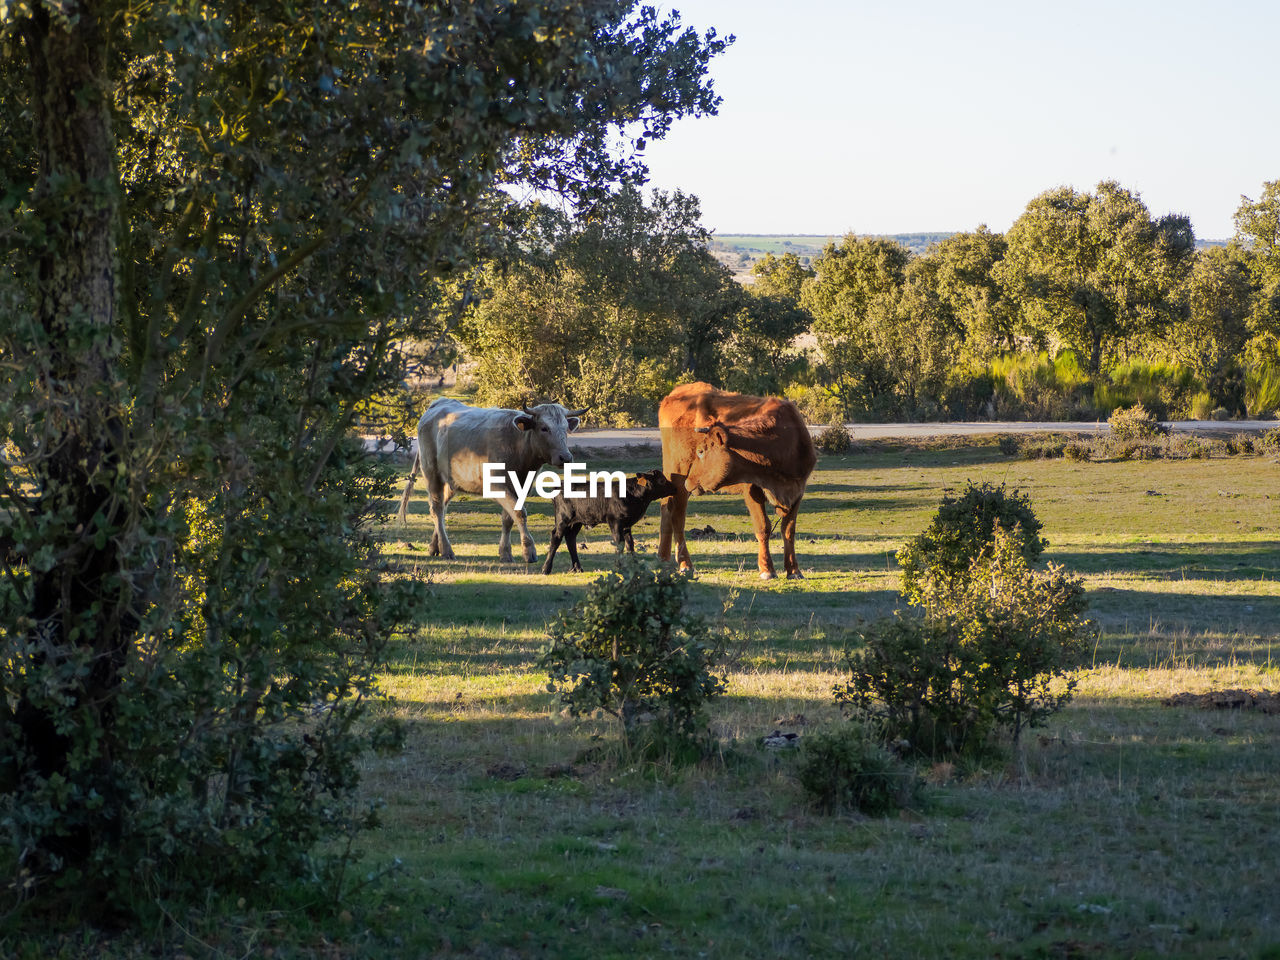 HORSES STANDING IN THE FIELD